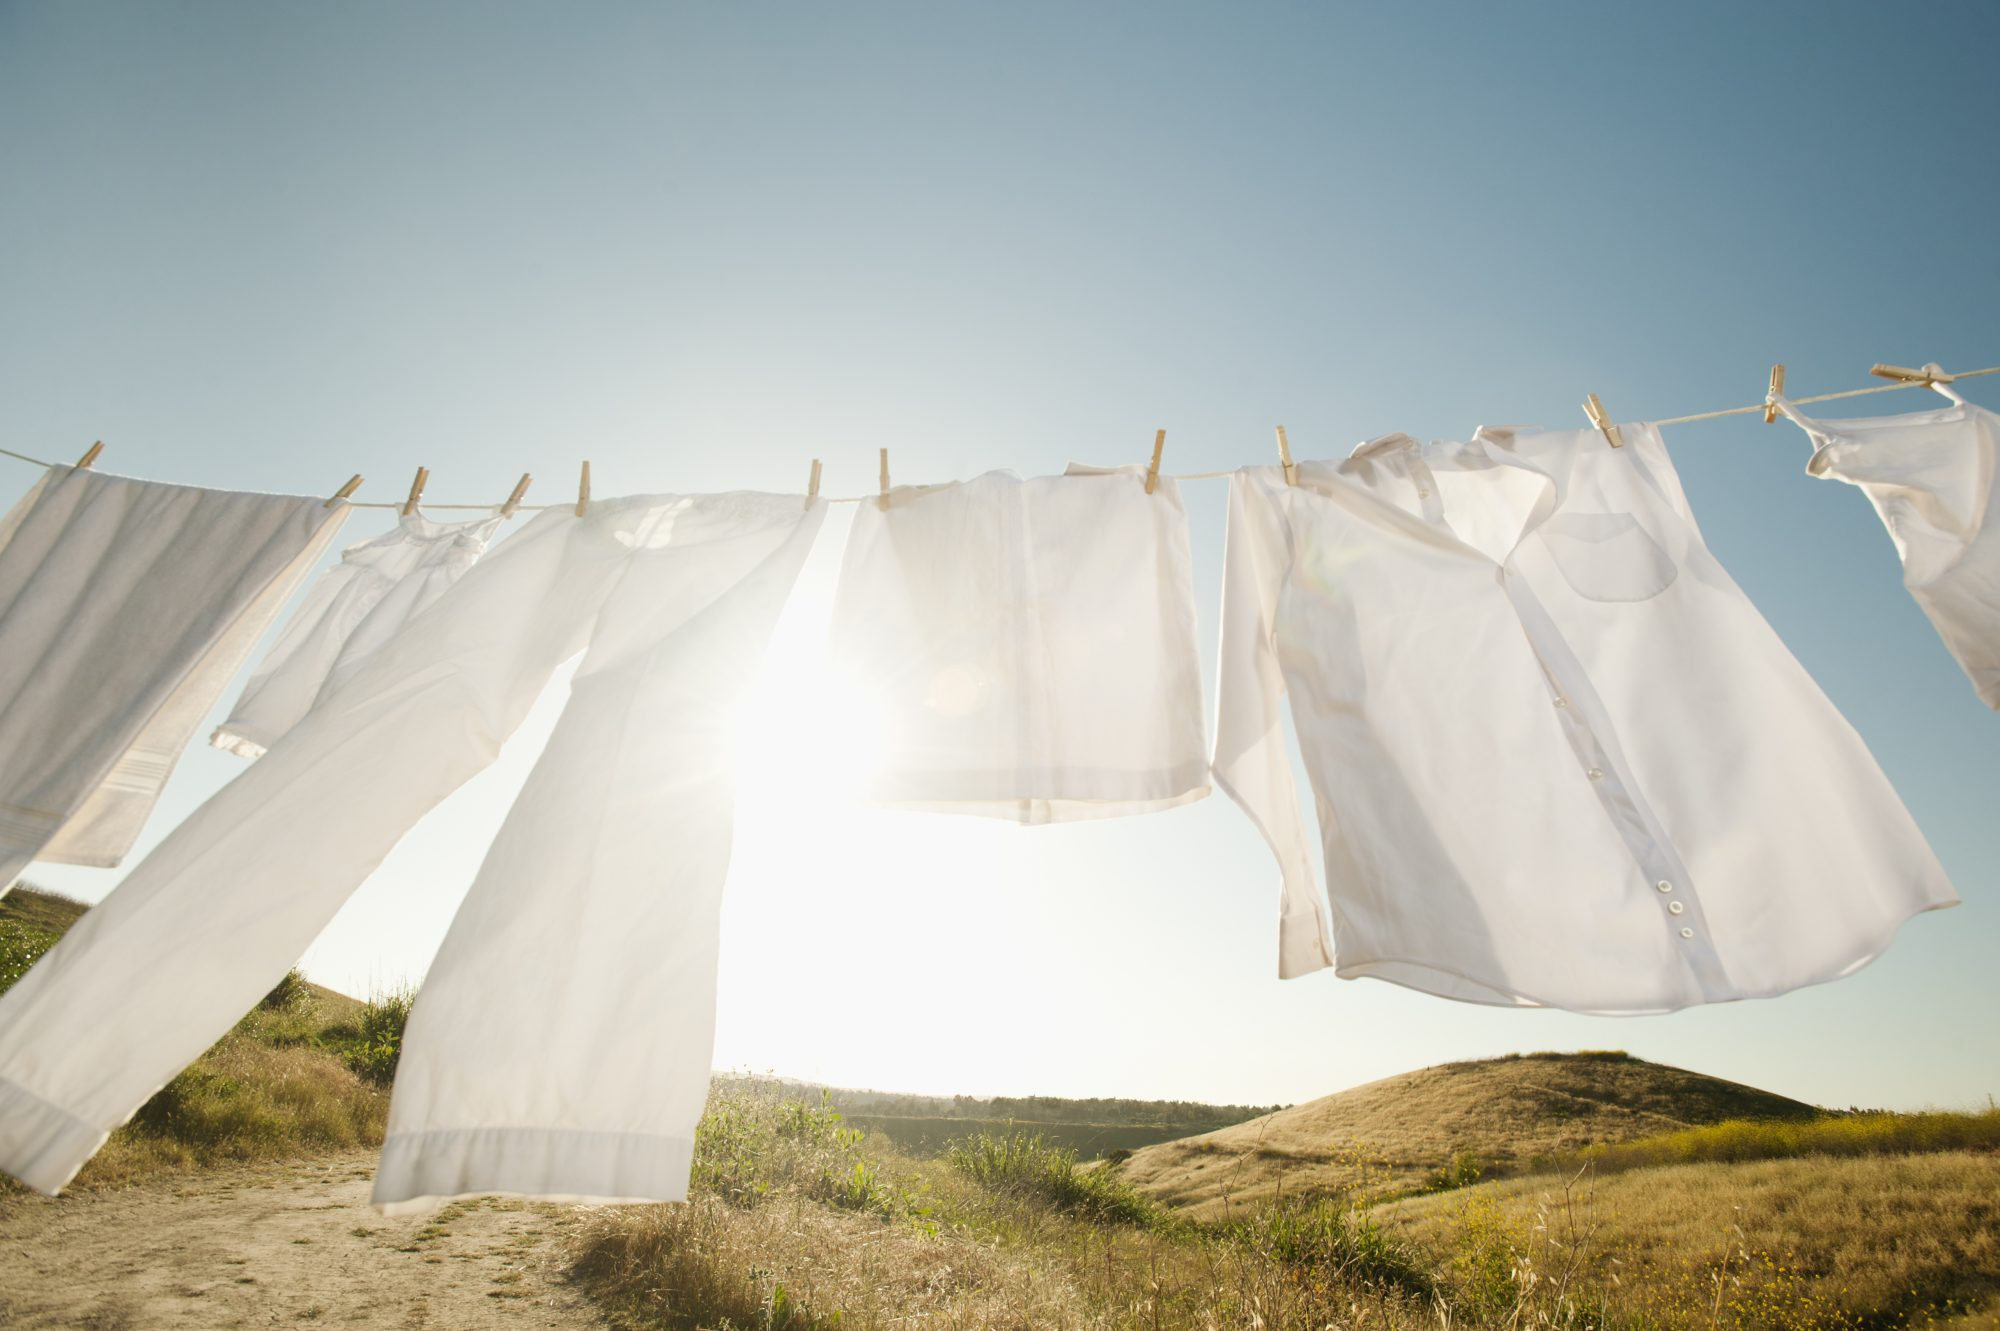 white clothes drying outdoors on clothesline